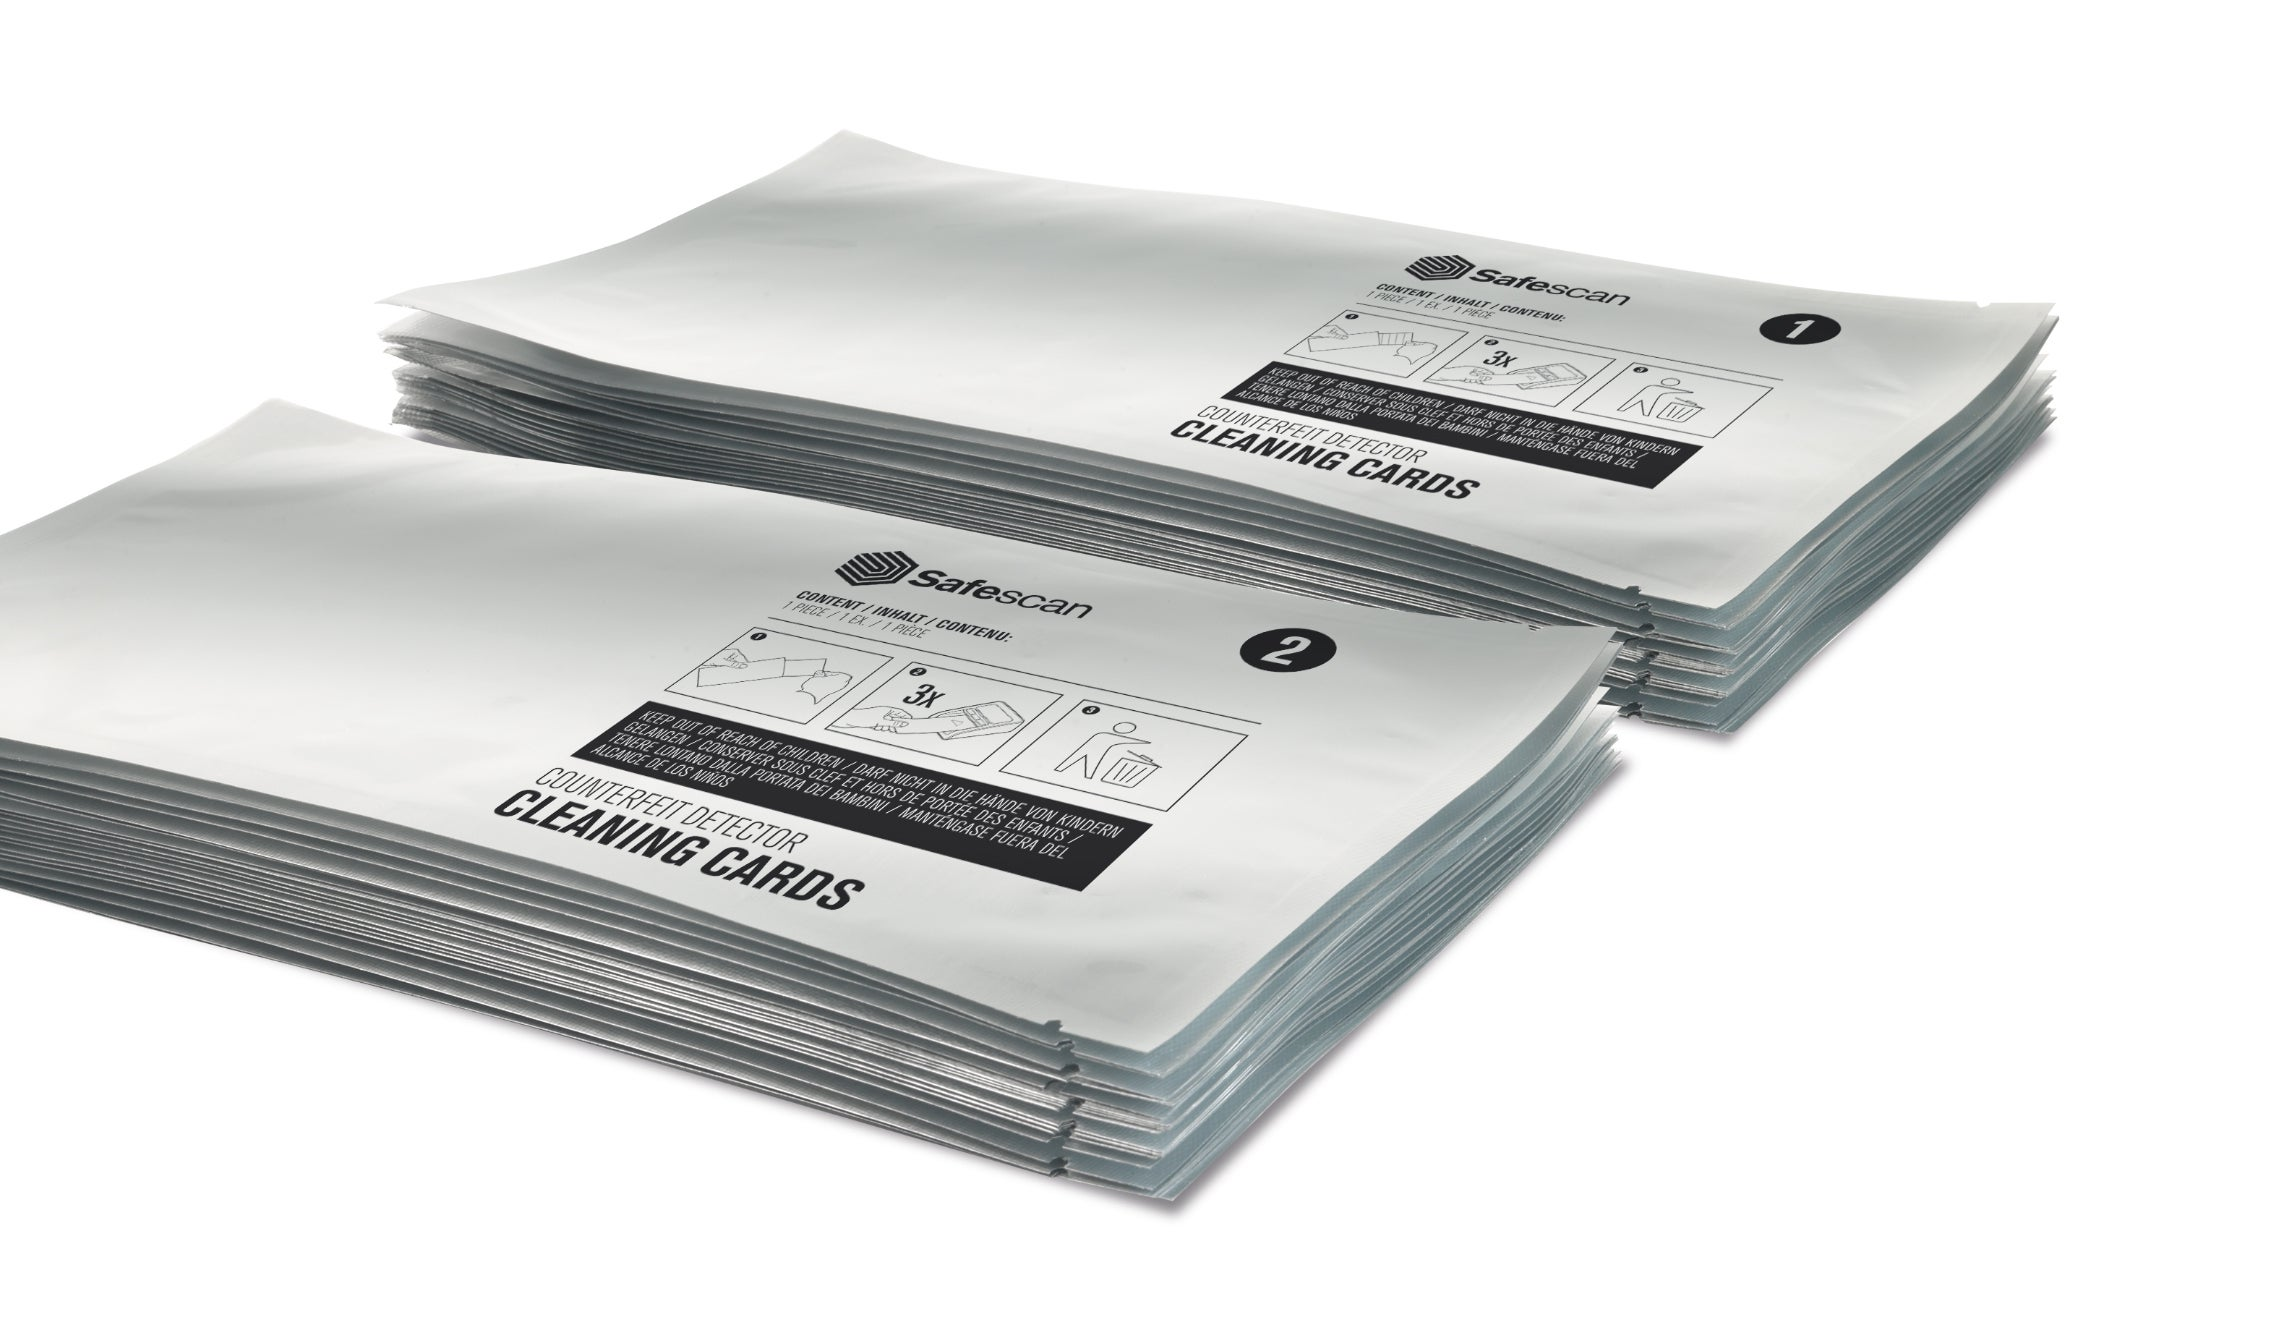 safescan-cleaning-cards